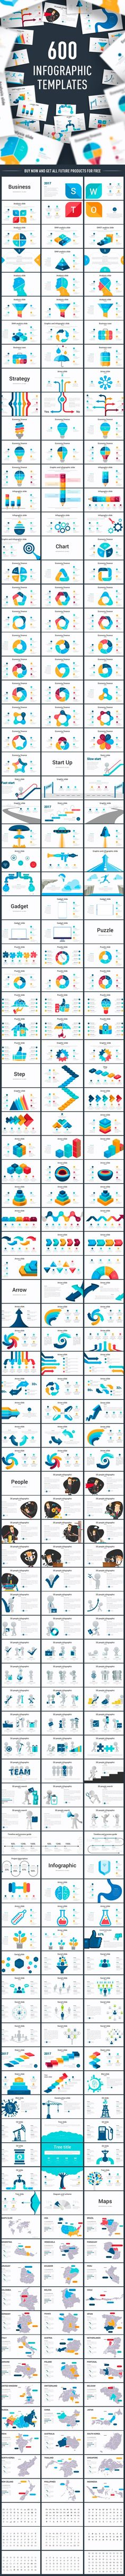 Pack #infographic slides - FREE update - #Creative #PowerPoint Templates Download here:  https://graphicriver.net/item/pack-infographic-slides-free-update/20109117?ref=alena994